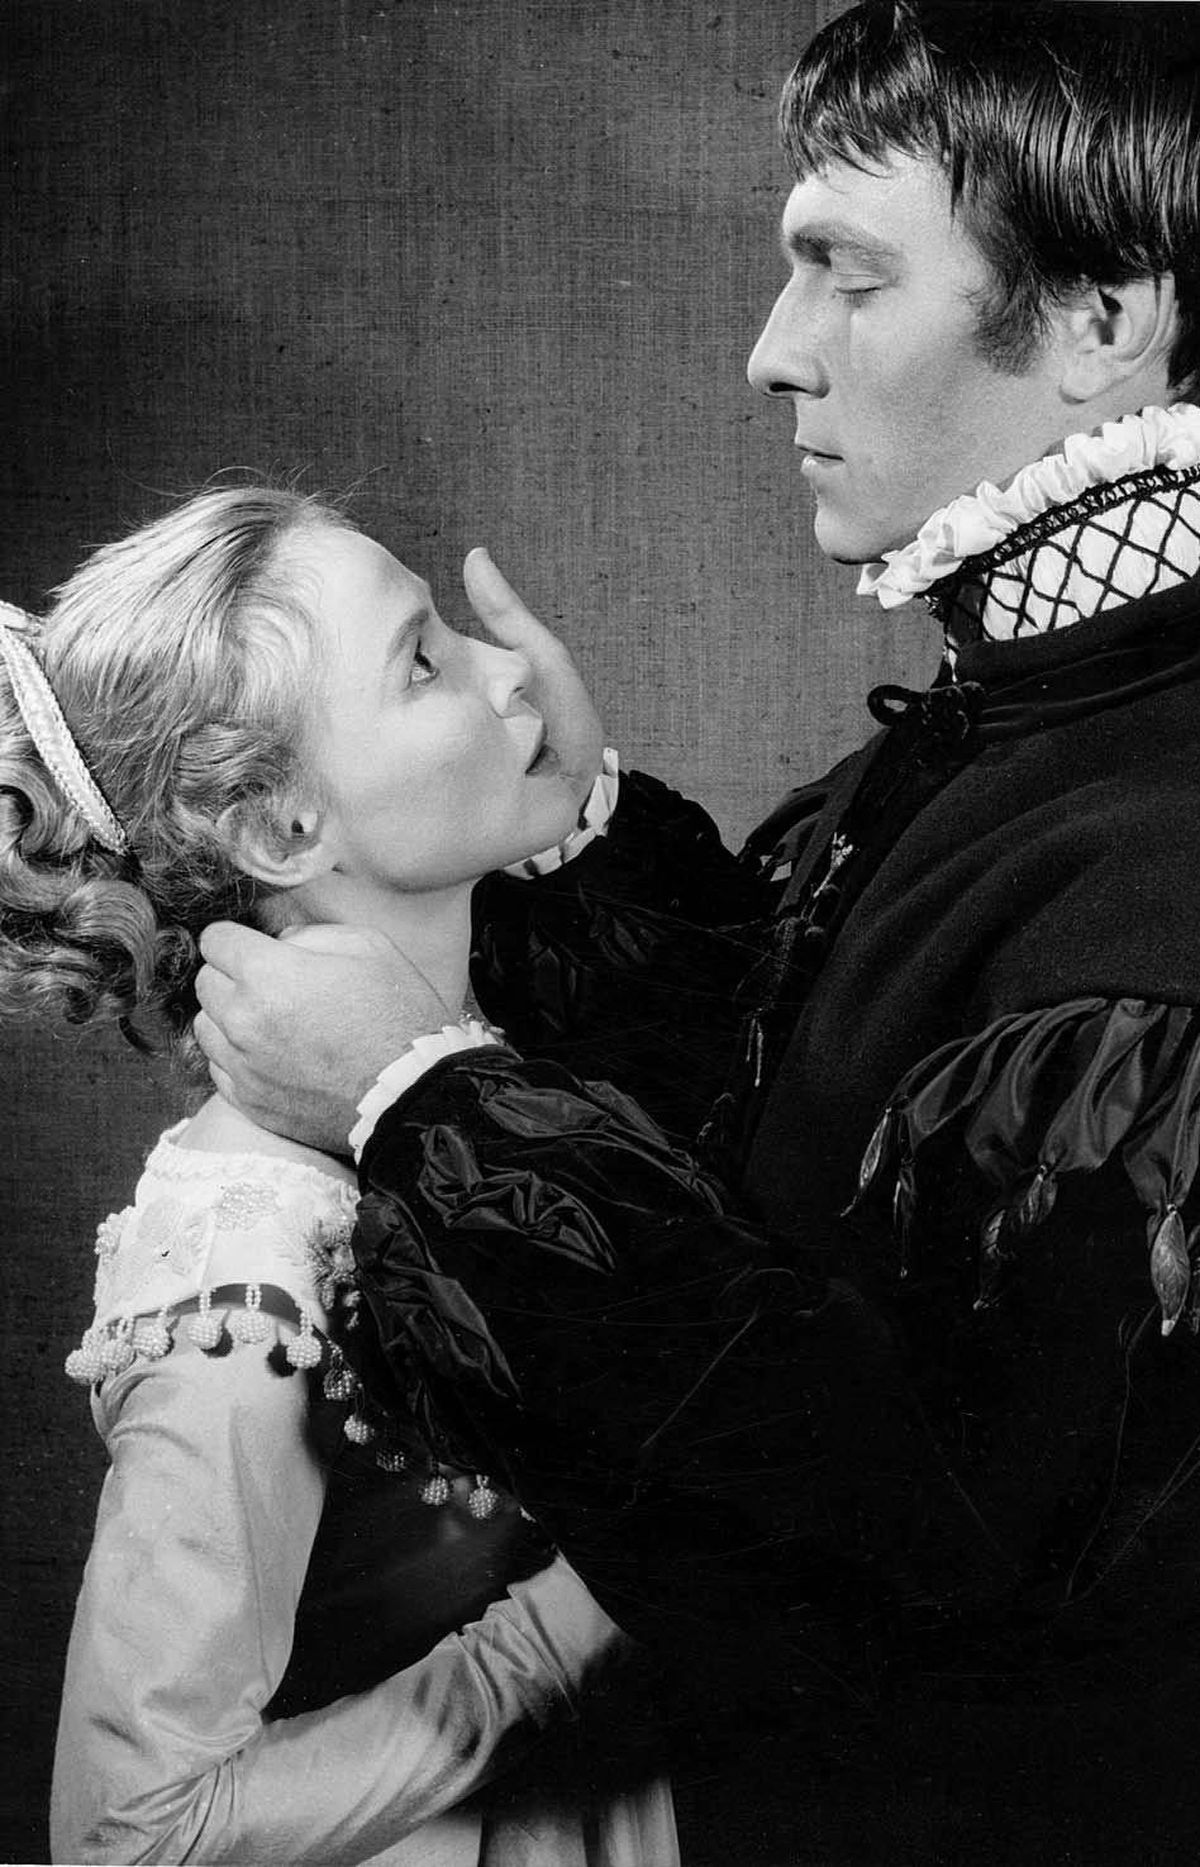 Christopher Plummer as Hamlet, right, in a 1957 Stratford production. The production also featured Frances Hyland as Ophelia.